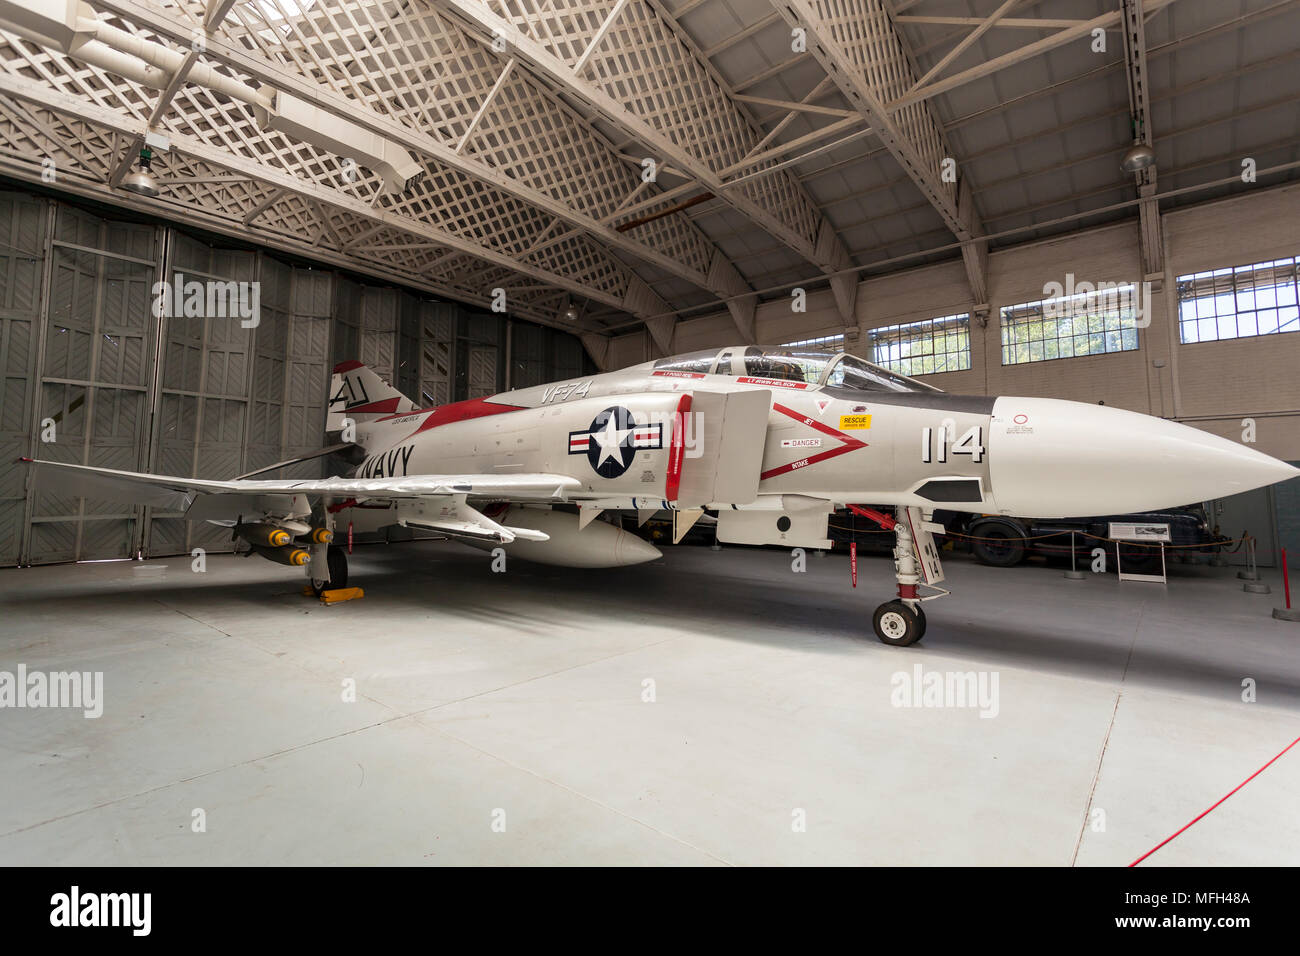 https://c8.alamy.com/comp/MFH48A/duxford-air-museum-england-uk-a-us-navy-phantom-fighter-plane-on-display-in-an-aircraft-hanger-MFH48A.jpg